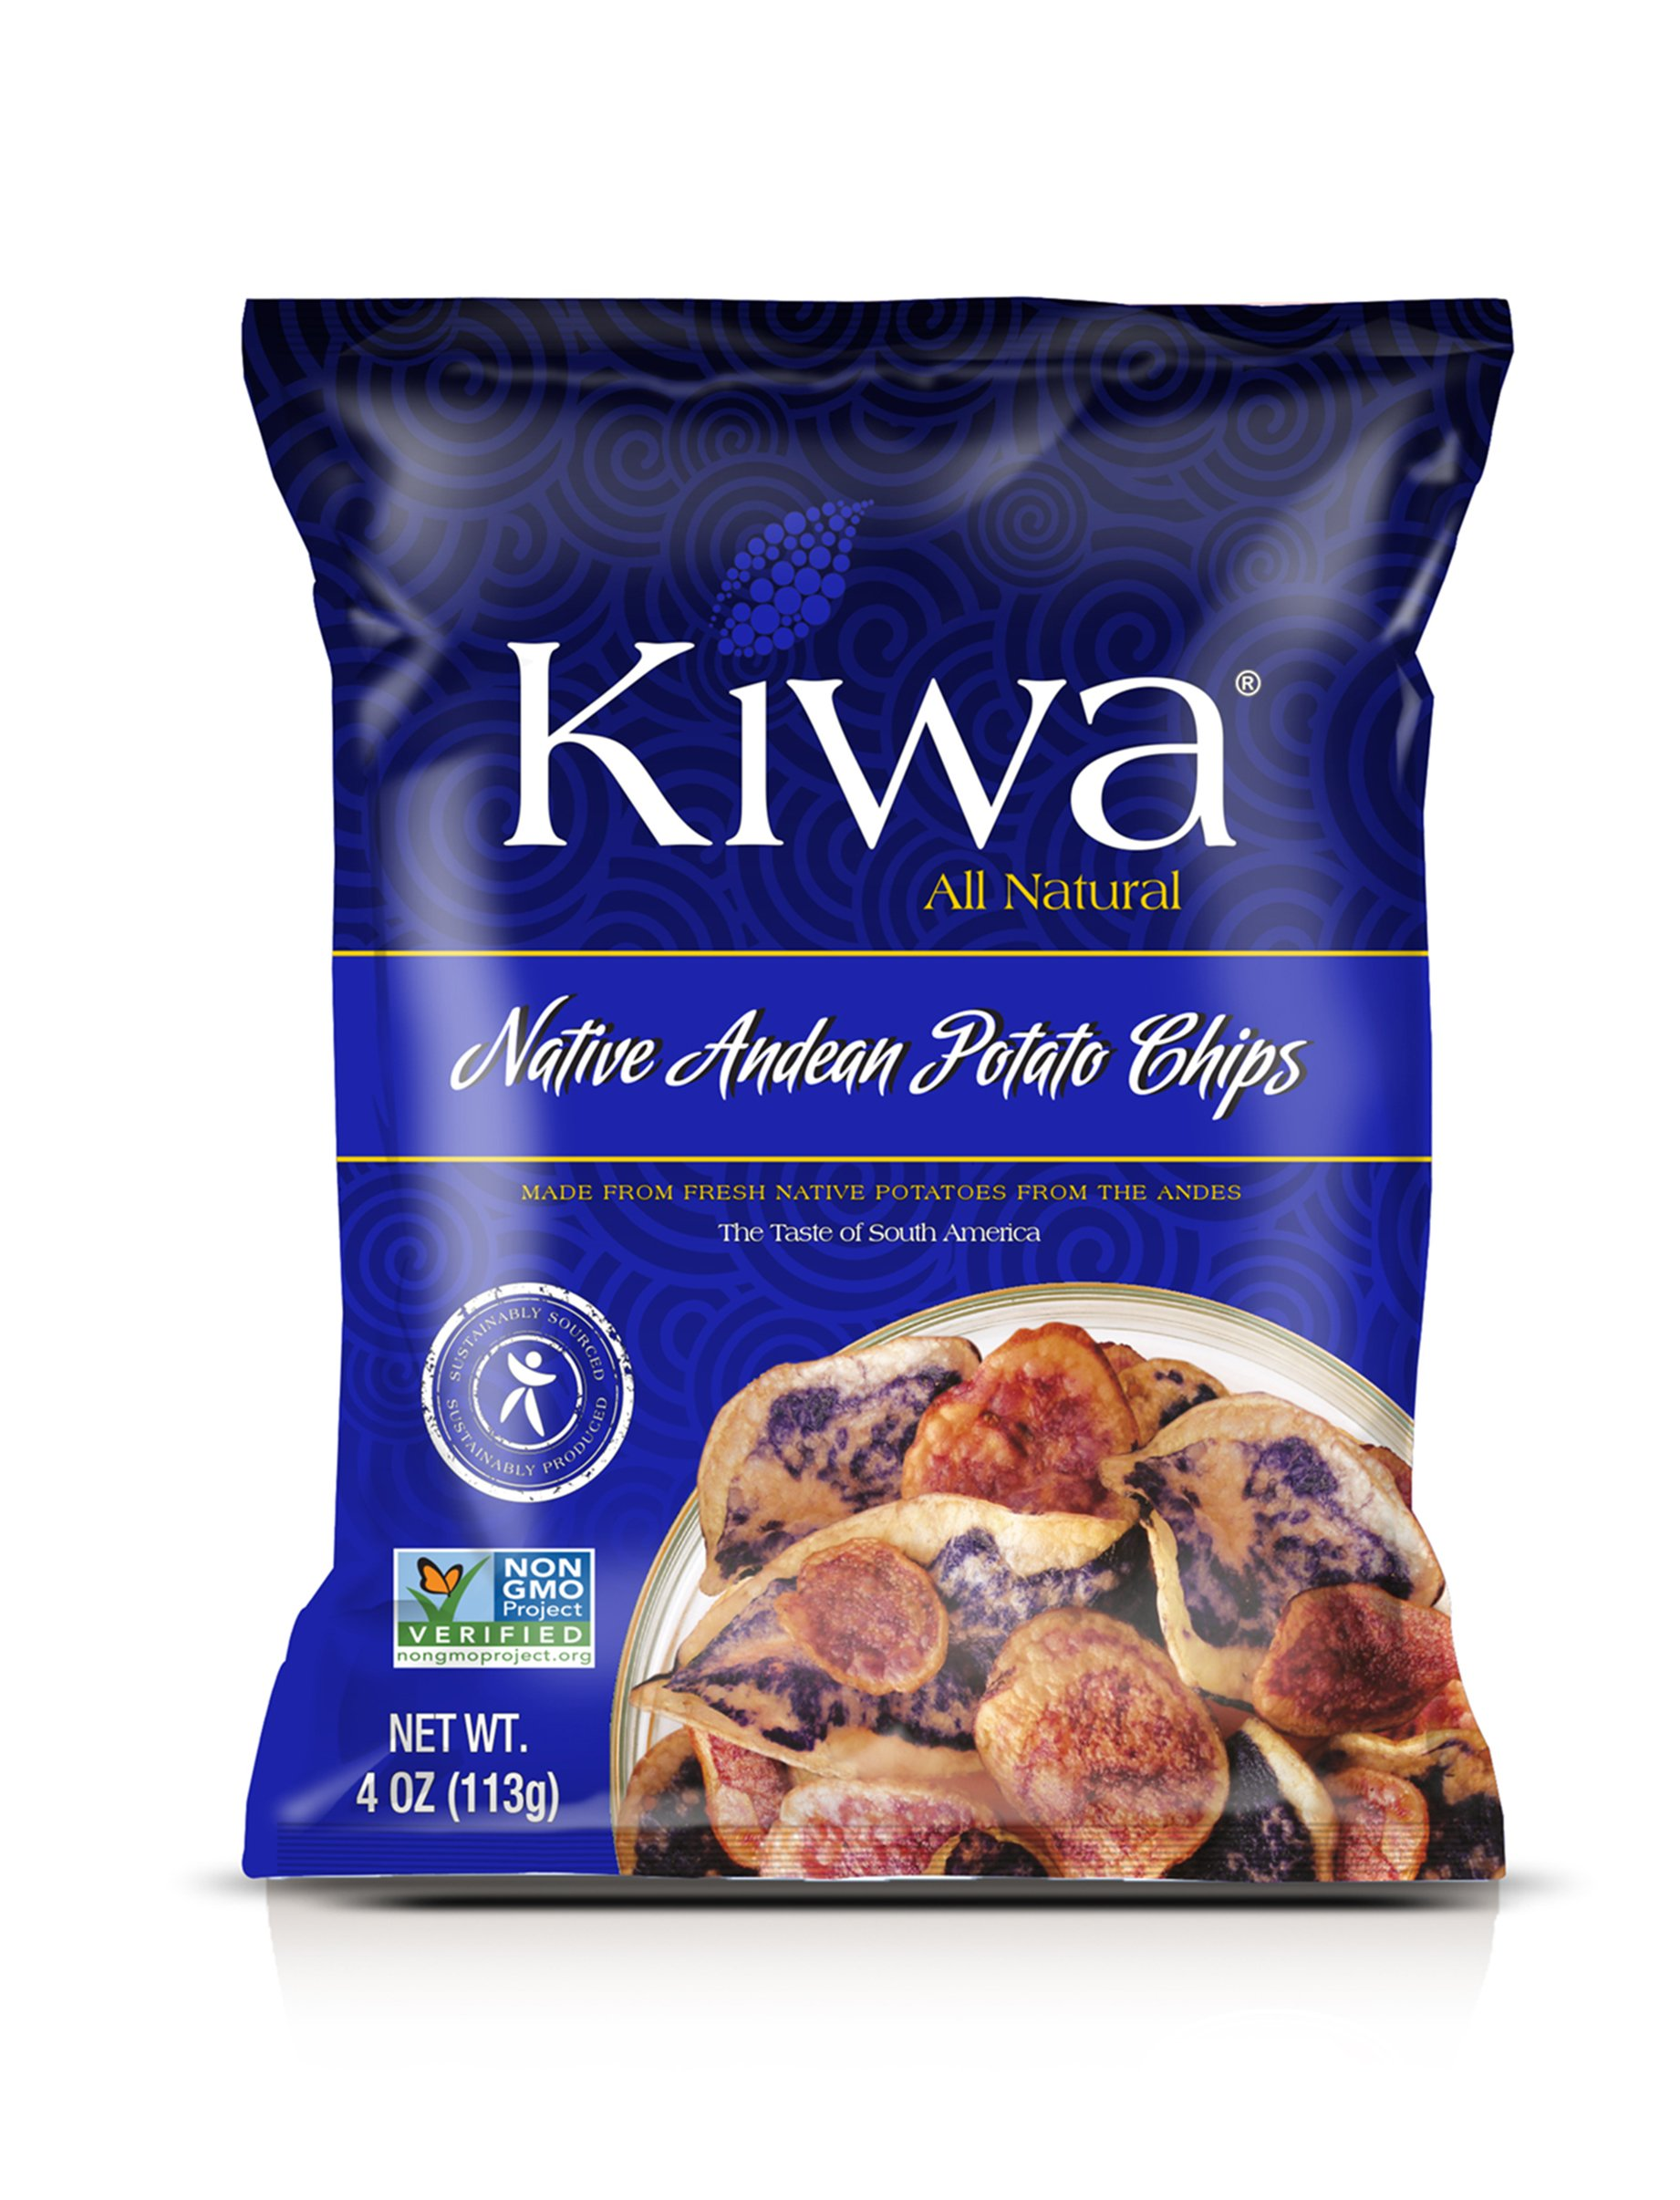 Kiwa Andean Potato Chips Mix (12 Pack, 4 Oz. Bag) All Natural Plant Based, Sustainably Sourced, Non-GMO, Gluten Free, Savory Snack by Kiwa